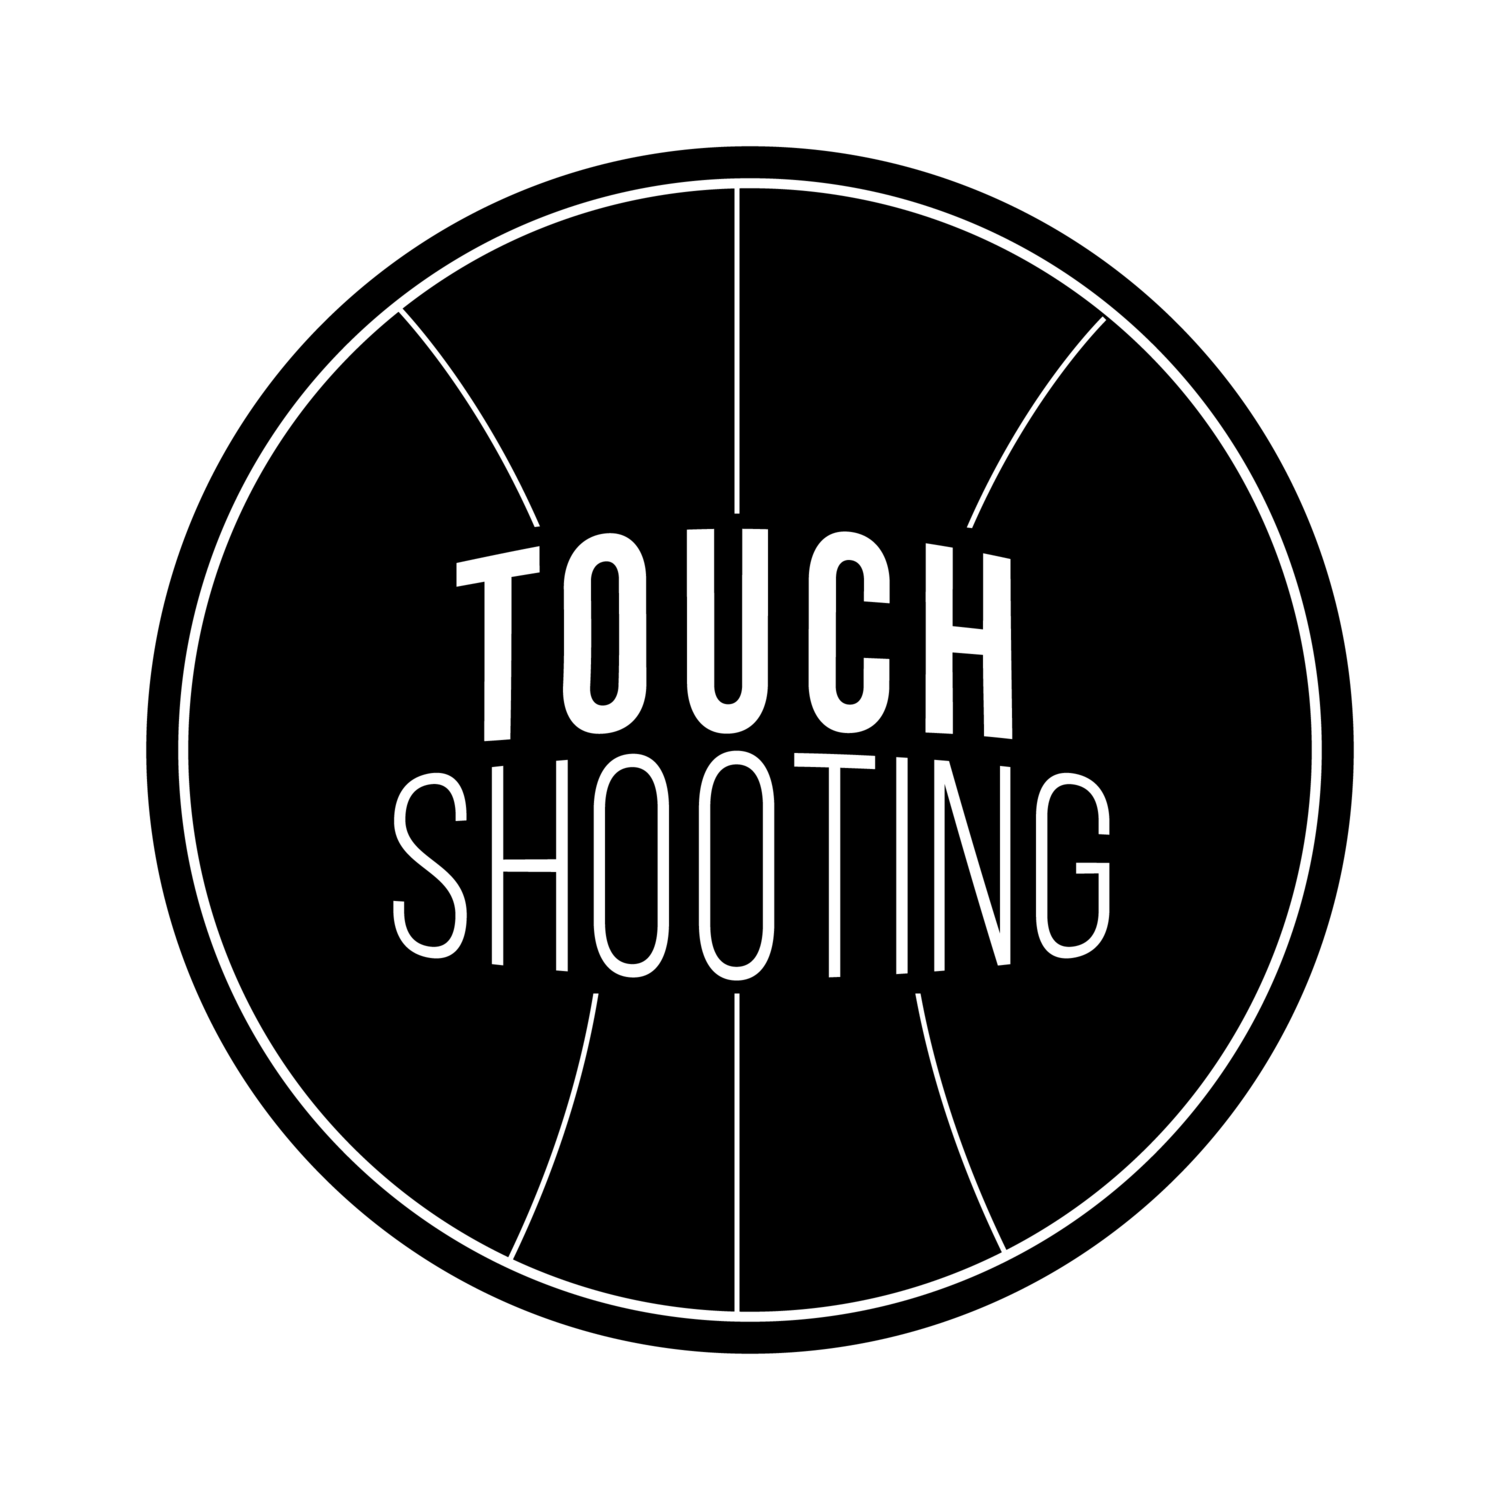 Touch Shooting